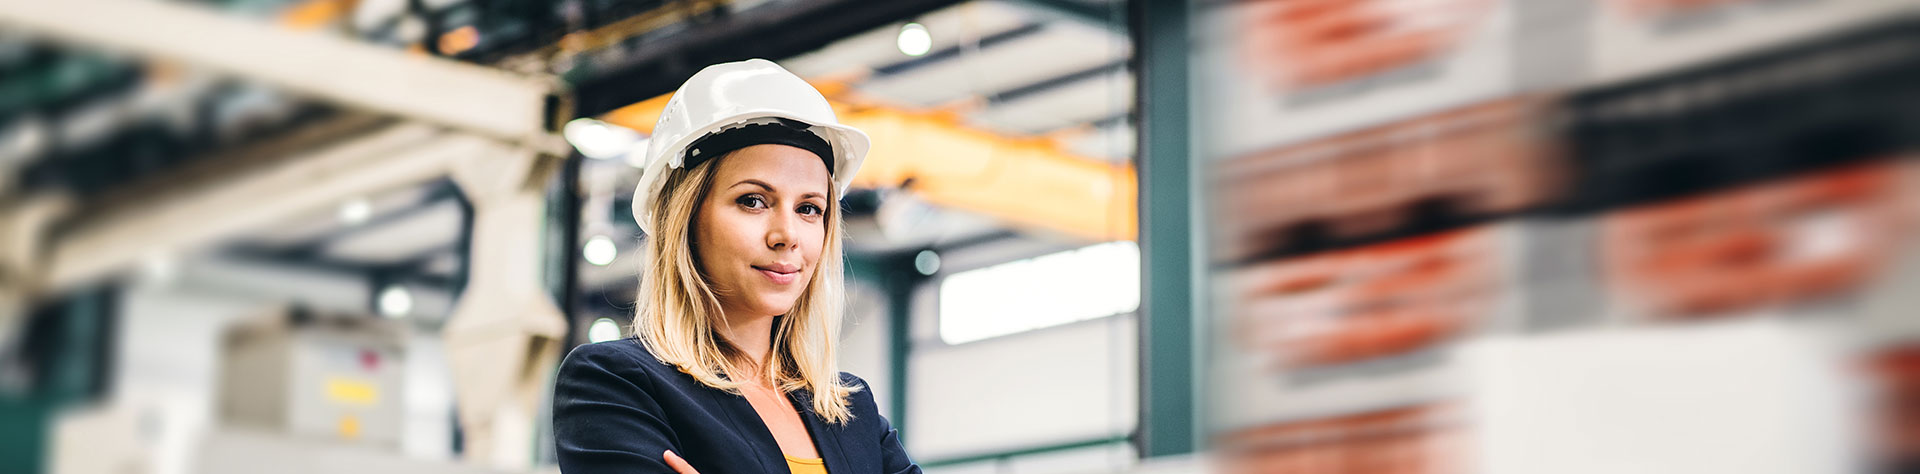 Woman in industrial setting